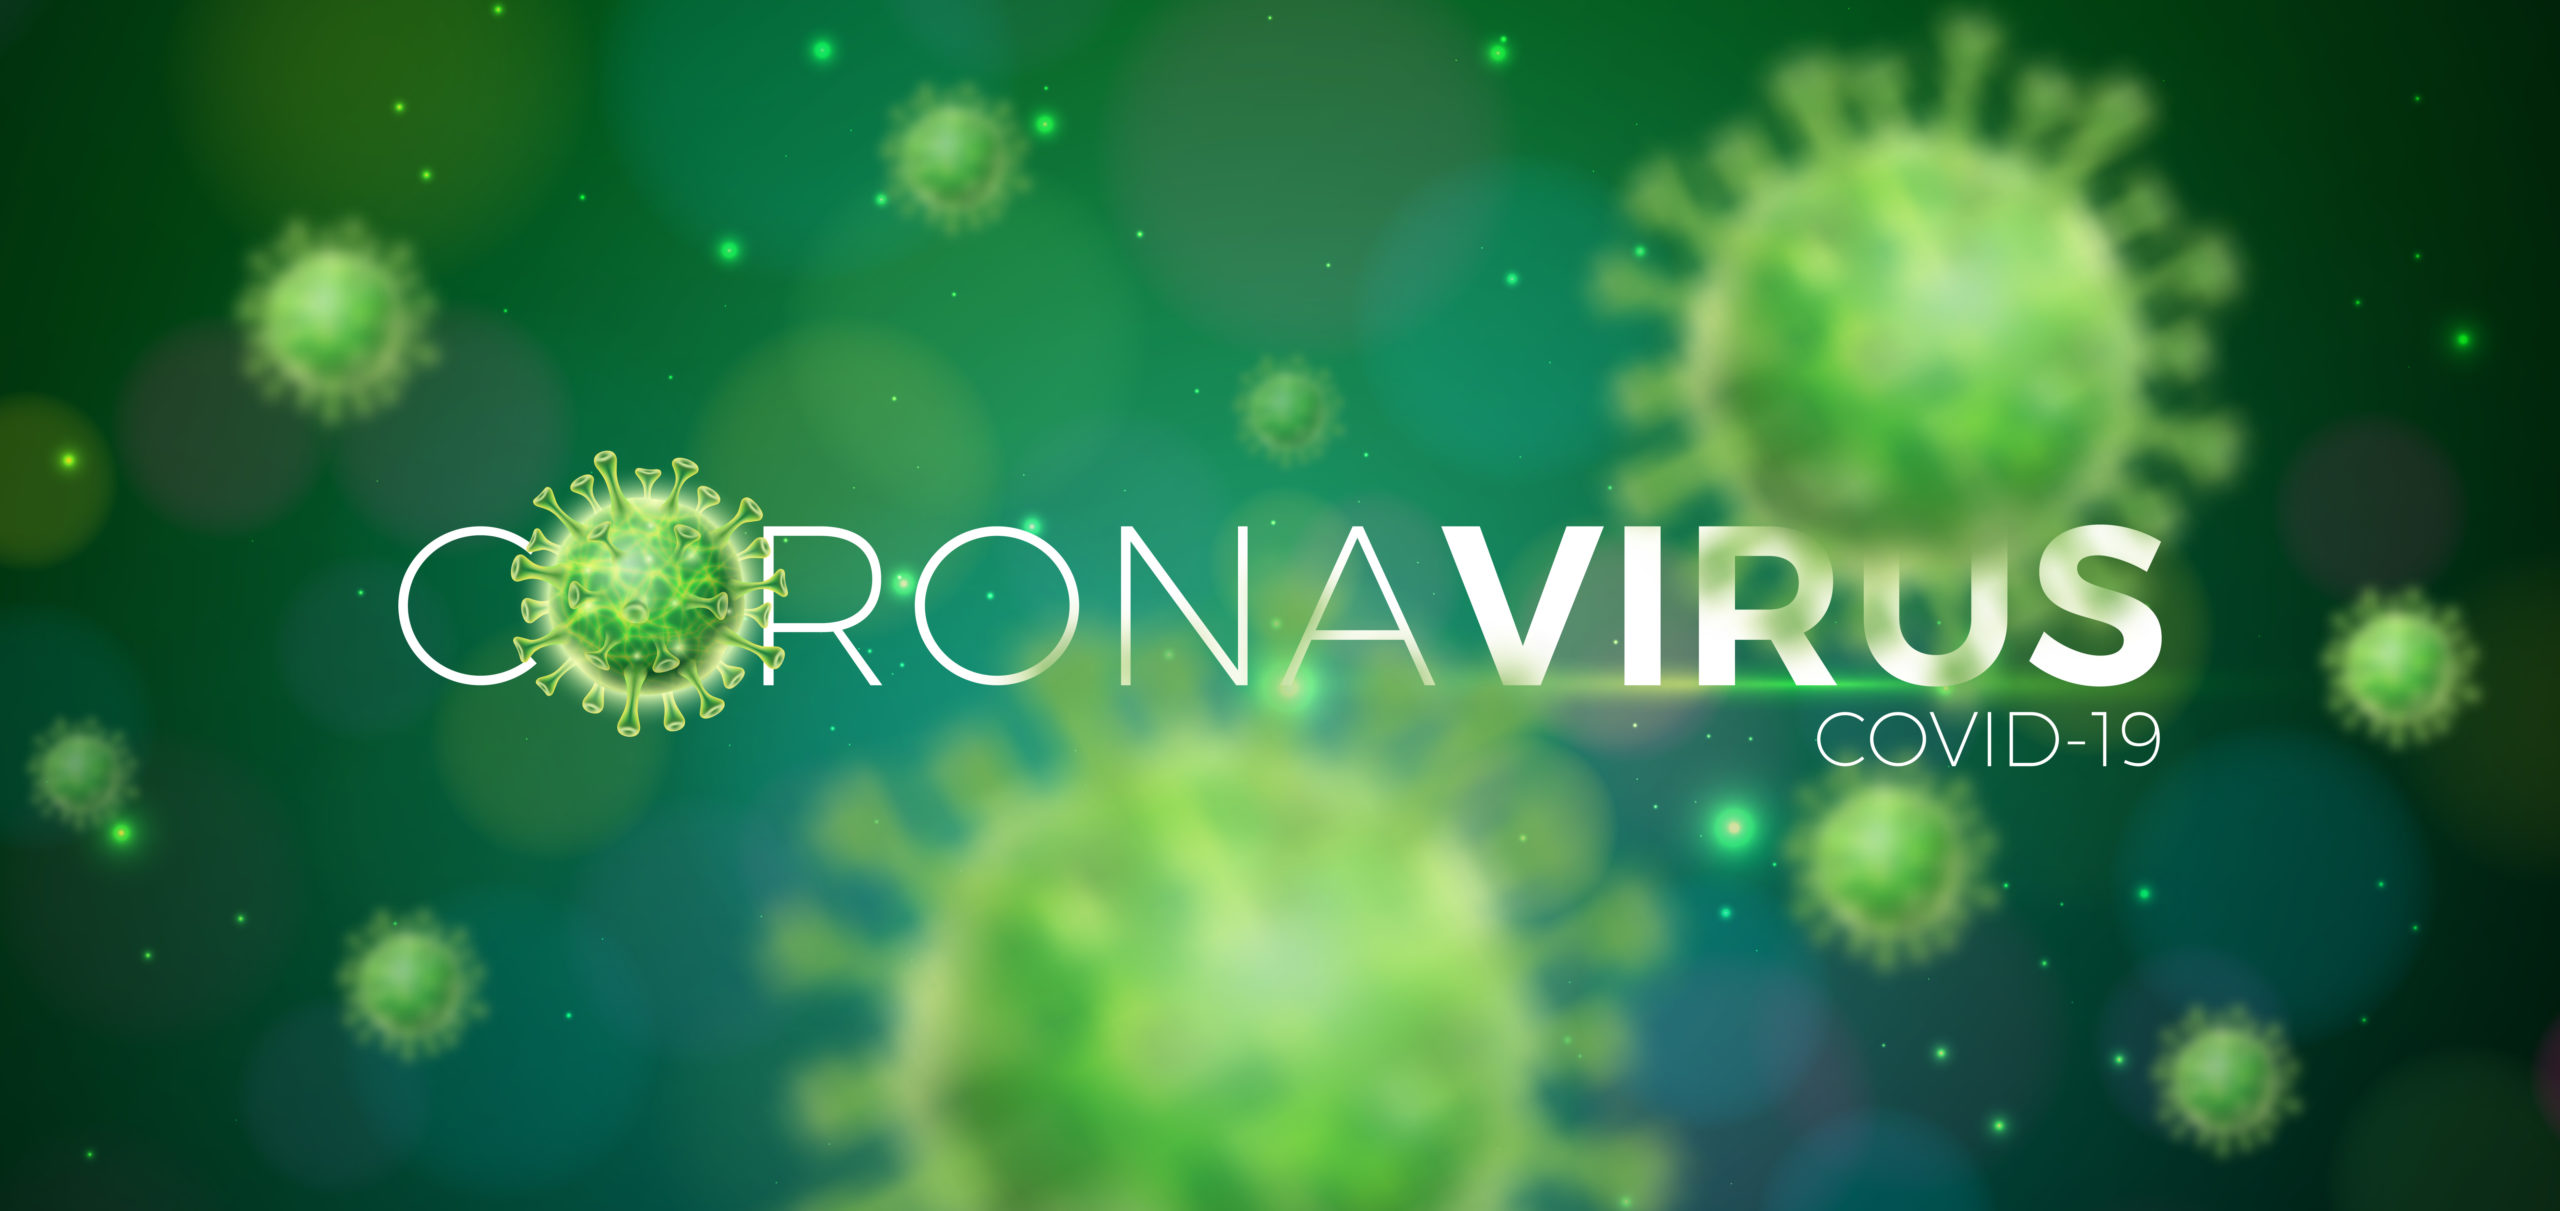 Covid-19. Coronavirus Outbreak Design with Virus Cell in Microscopic View on Green Background. Vector Illustration Template on Dangerous SARS Epidemic Theme for Promotional Banner or Flyer.